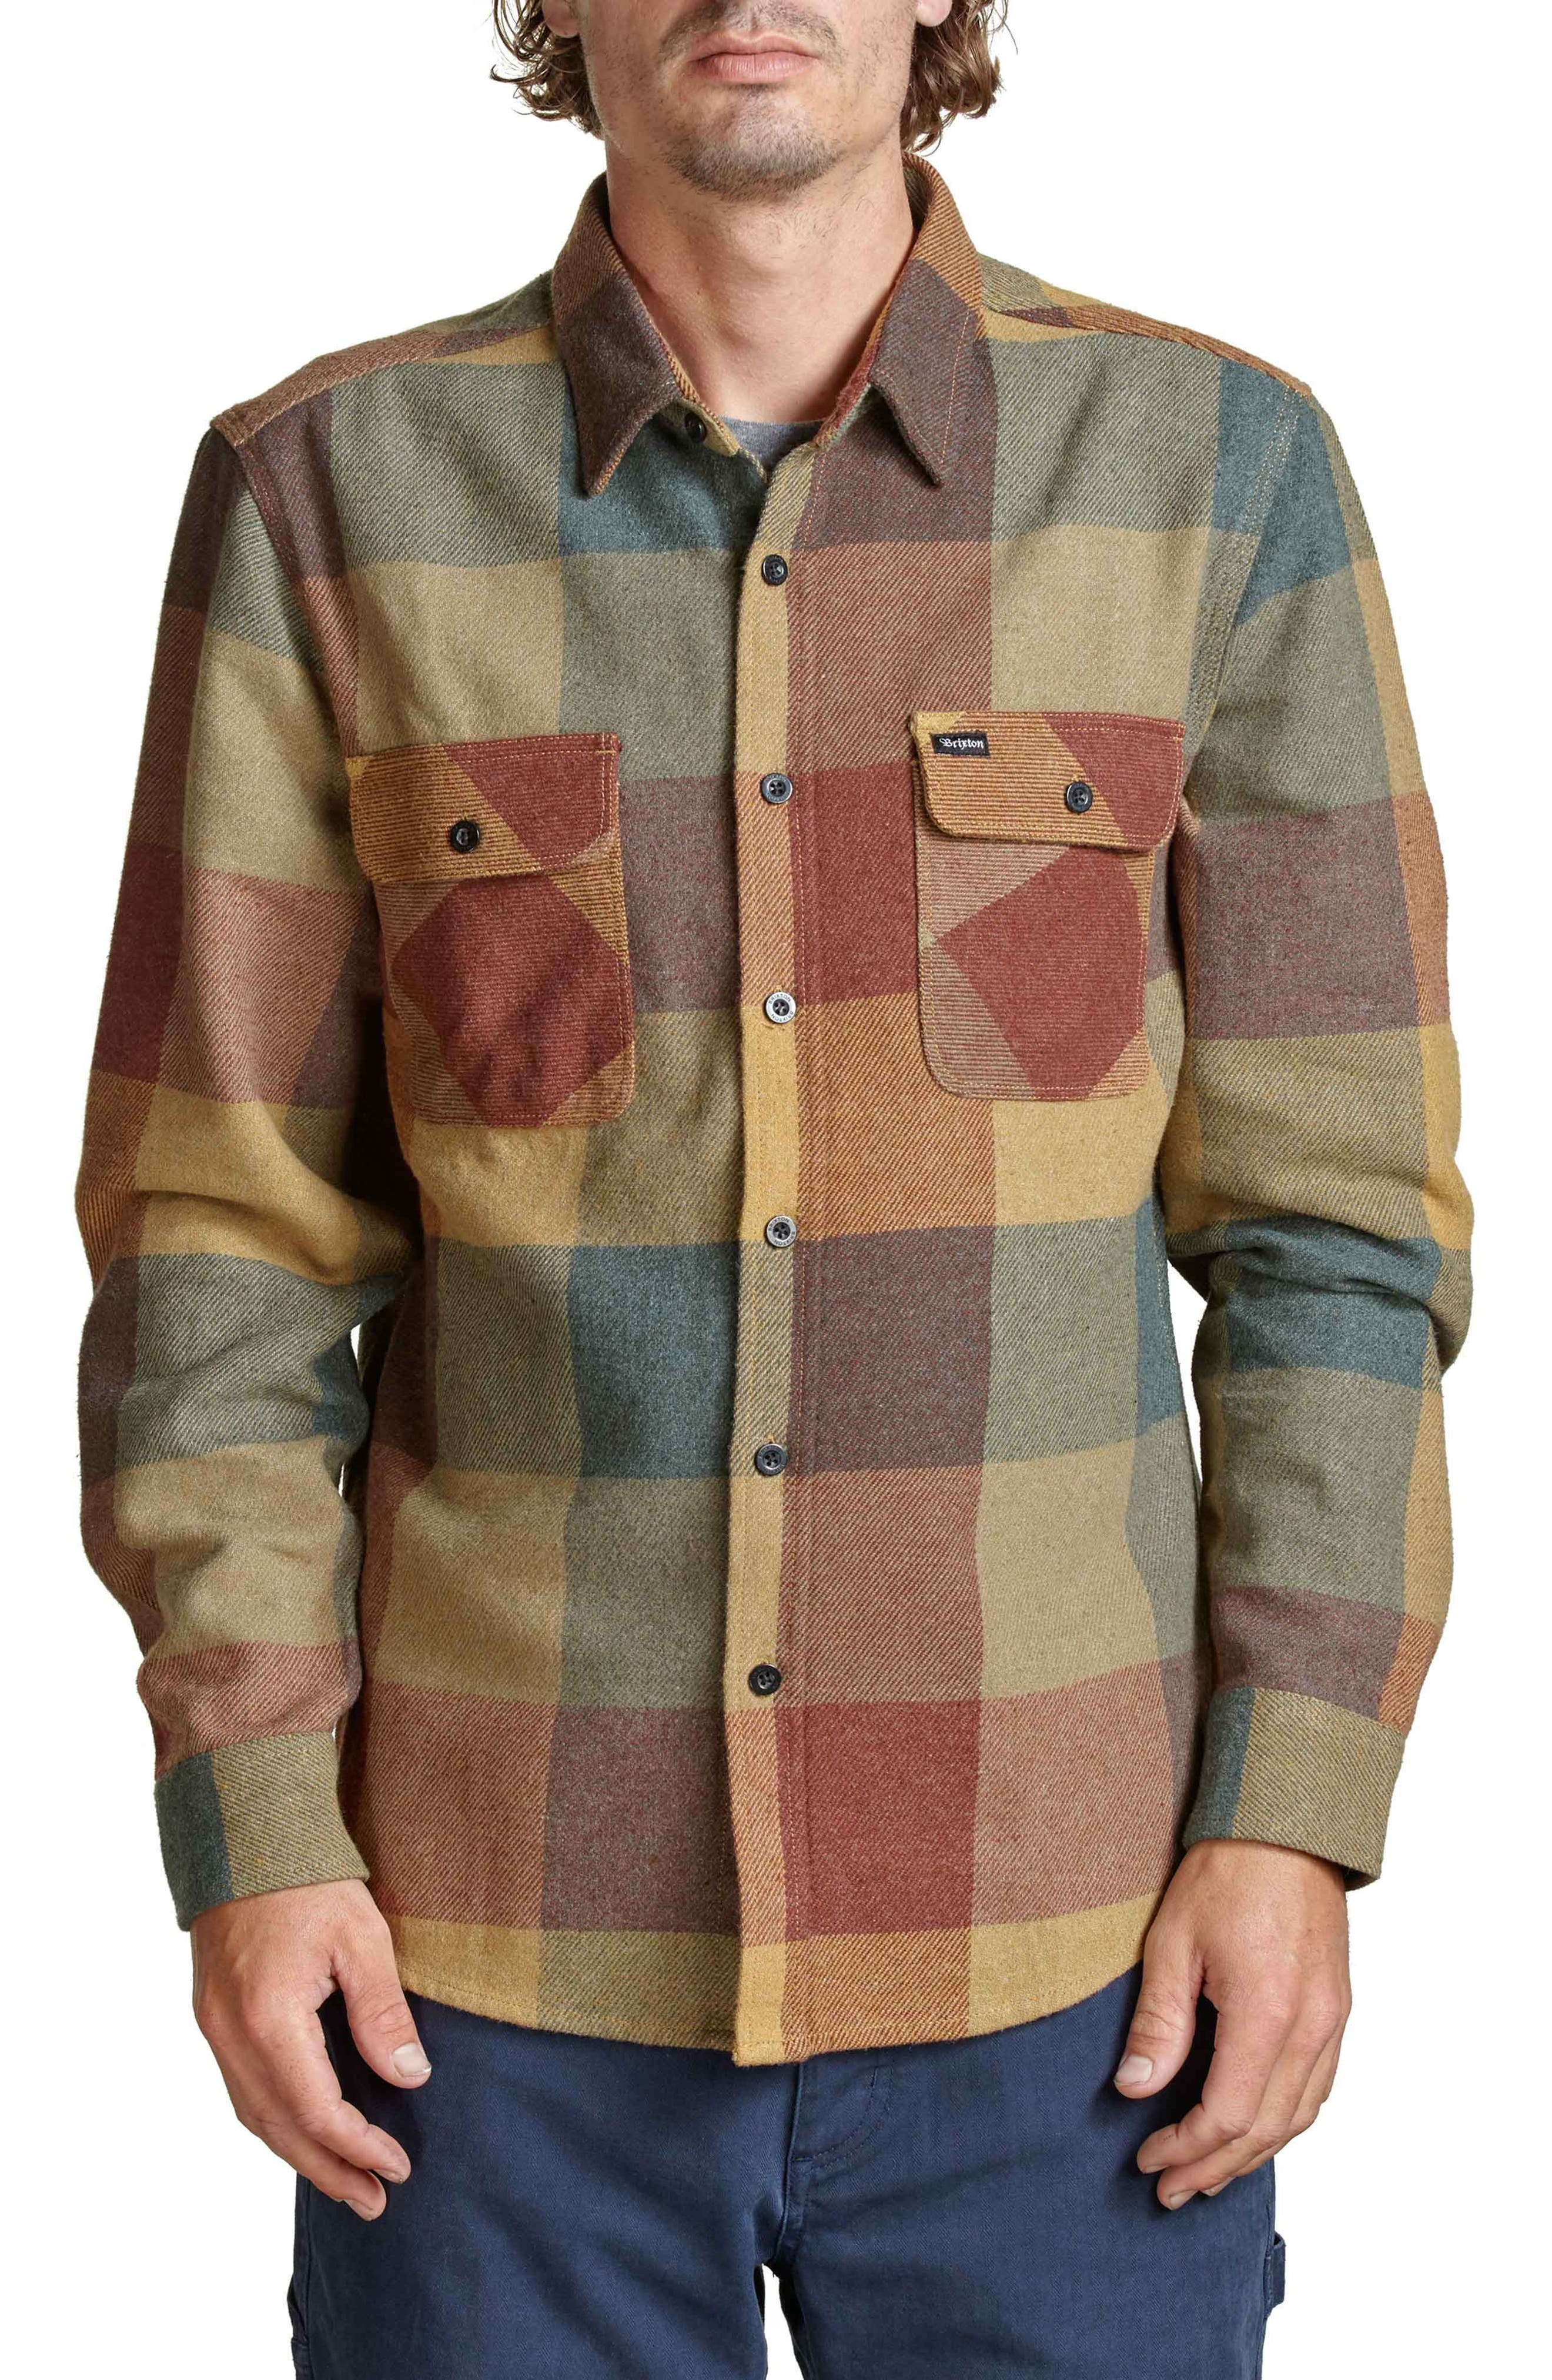 Bowery Flannel Shirt,                             Main thumbnail 1, color,                             Rust/ Copper